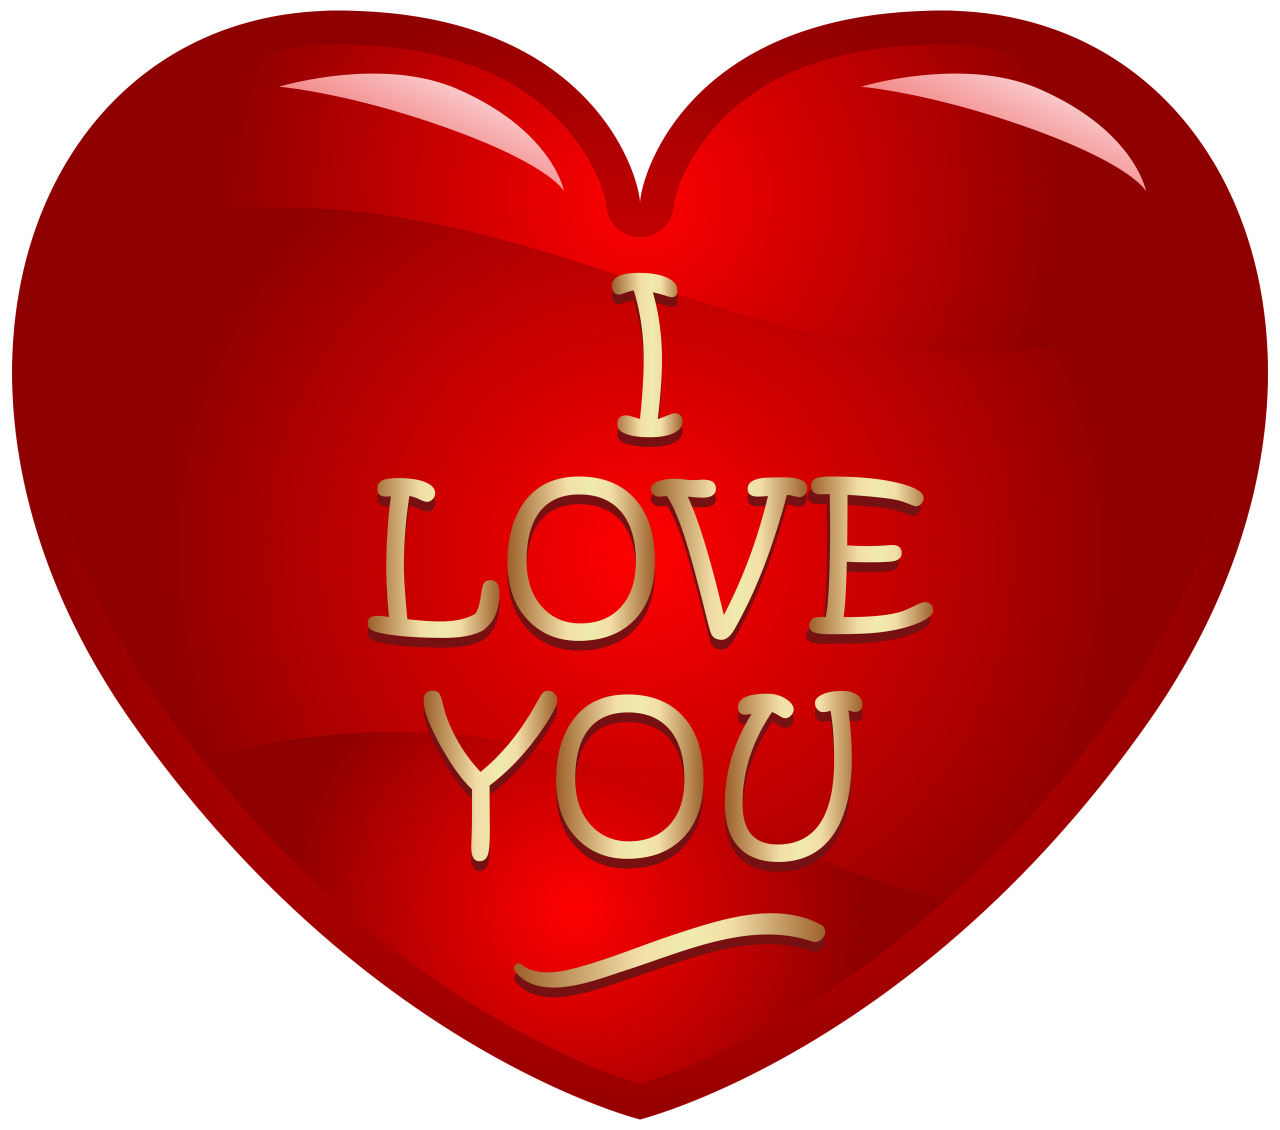 I Love You Written in Heart PNG Image